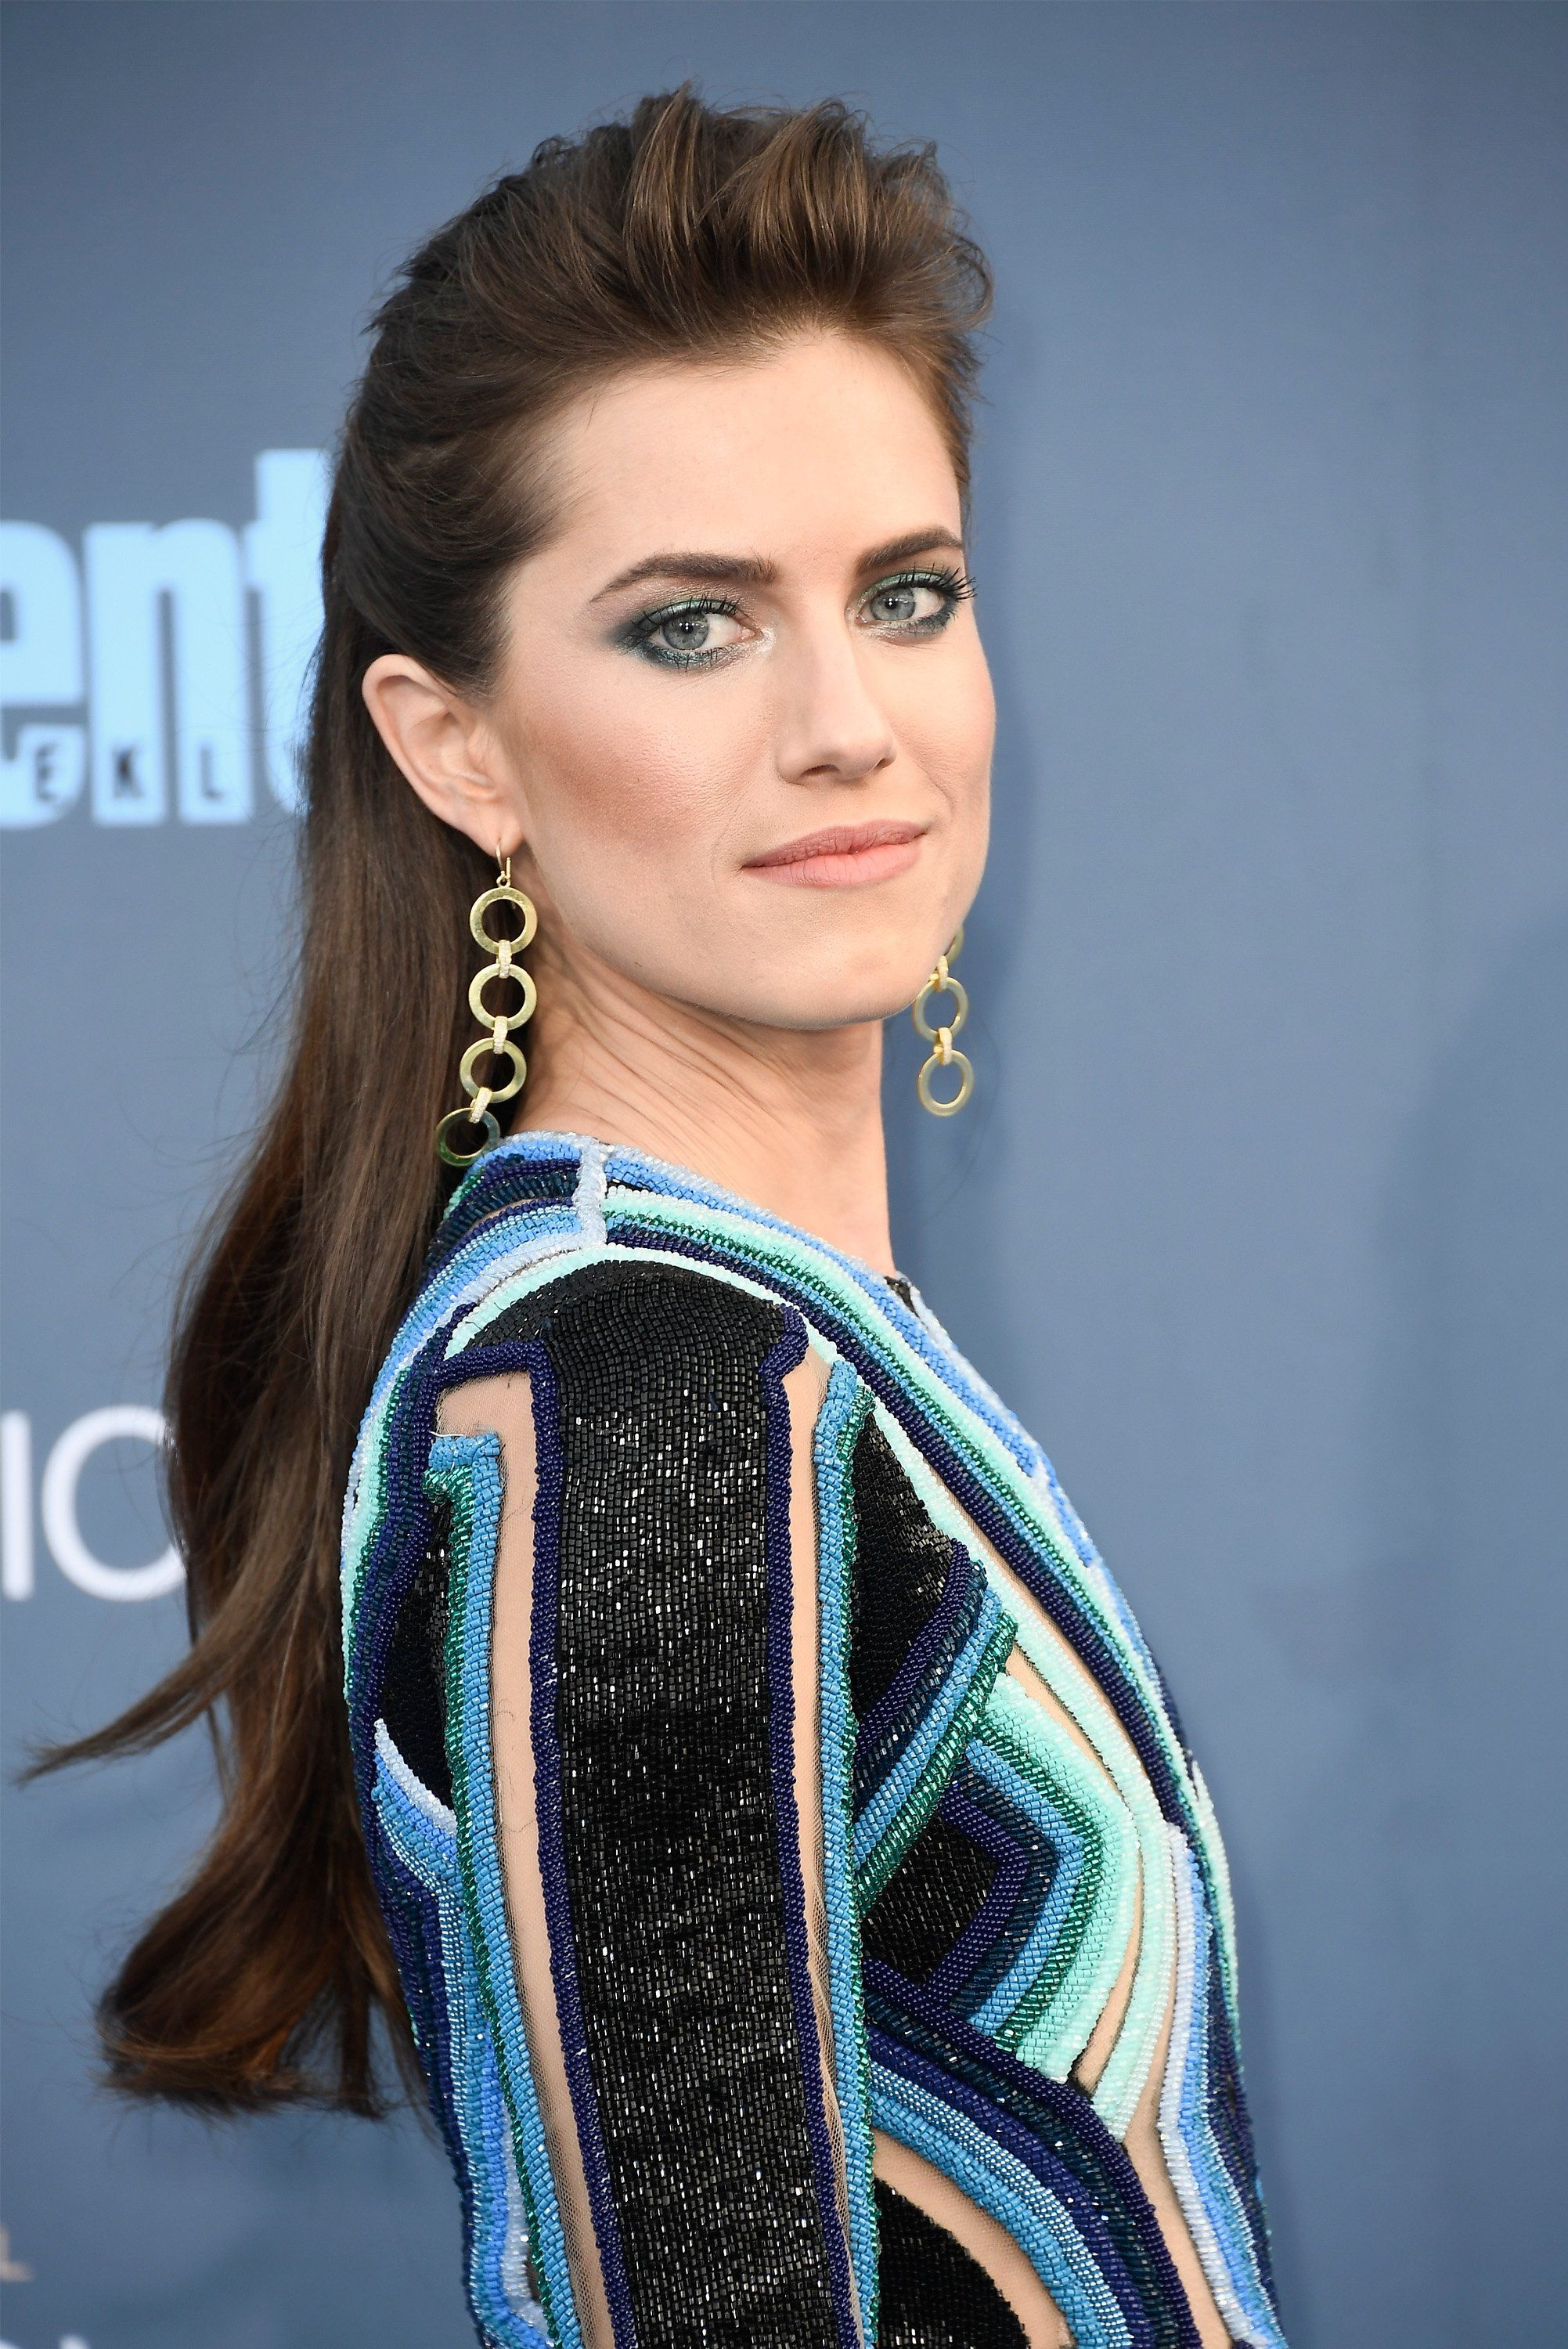 Allison Williams Thong 49 hot pictures of allison williams are gift from god to humans